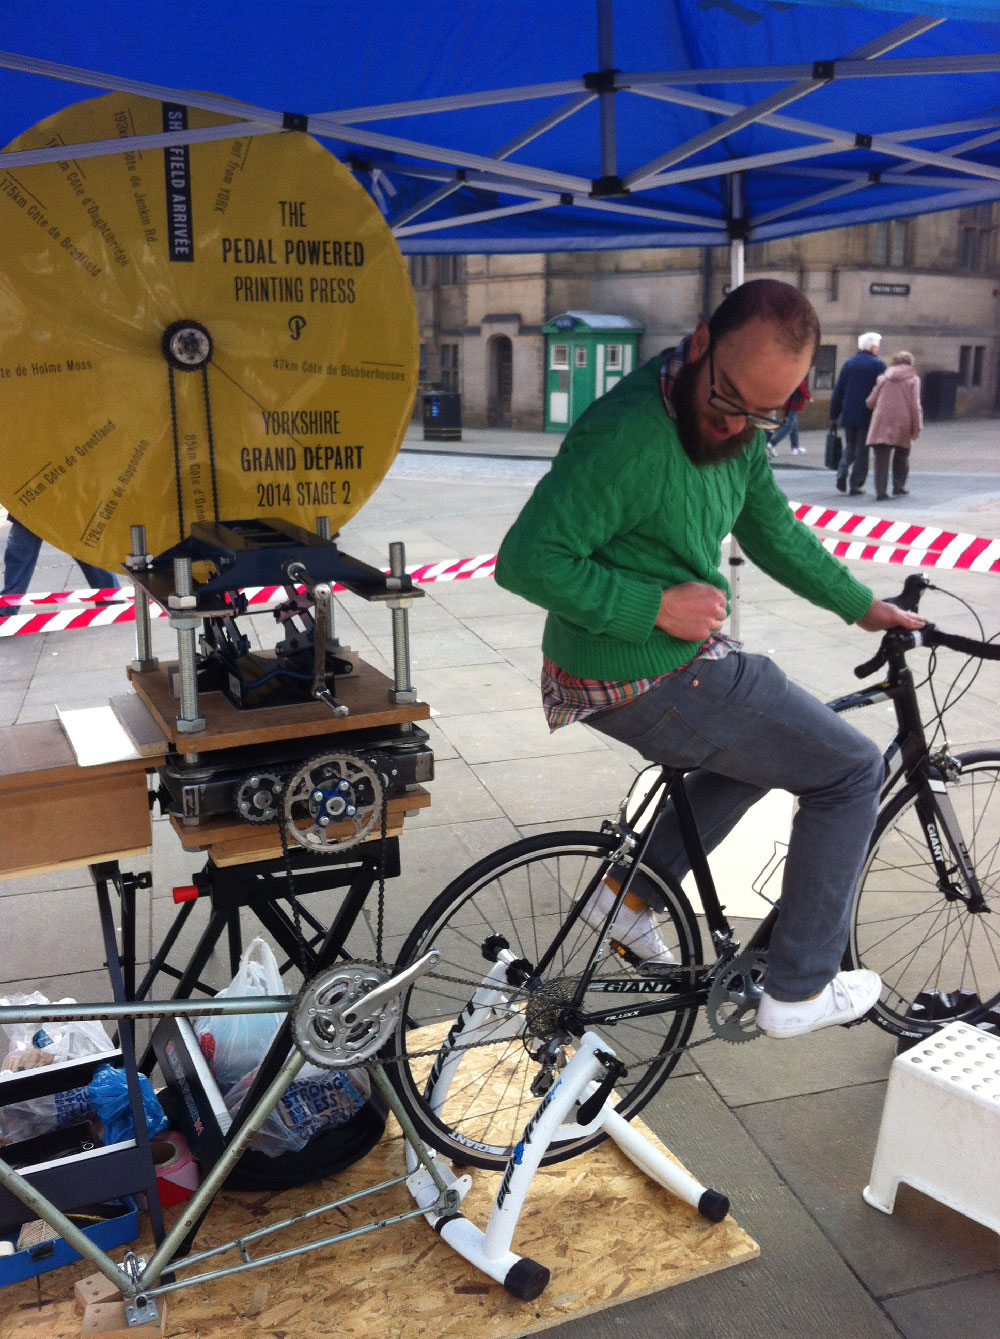 pedal powered printing press, sheffield letterpress, grand depart, le tour yorkshire